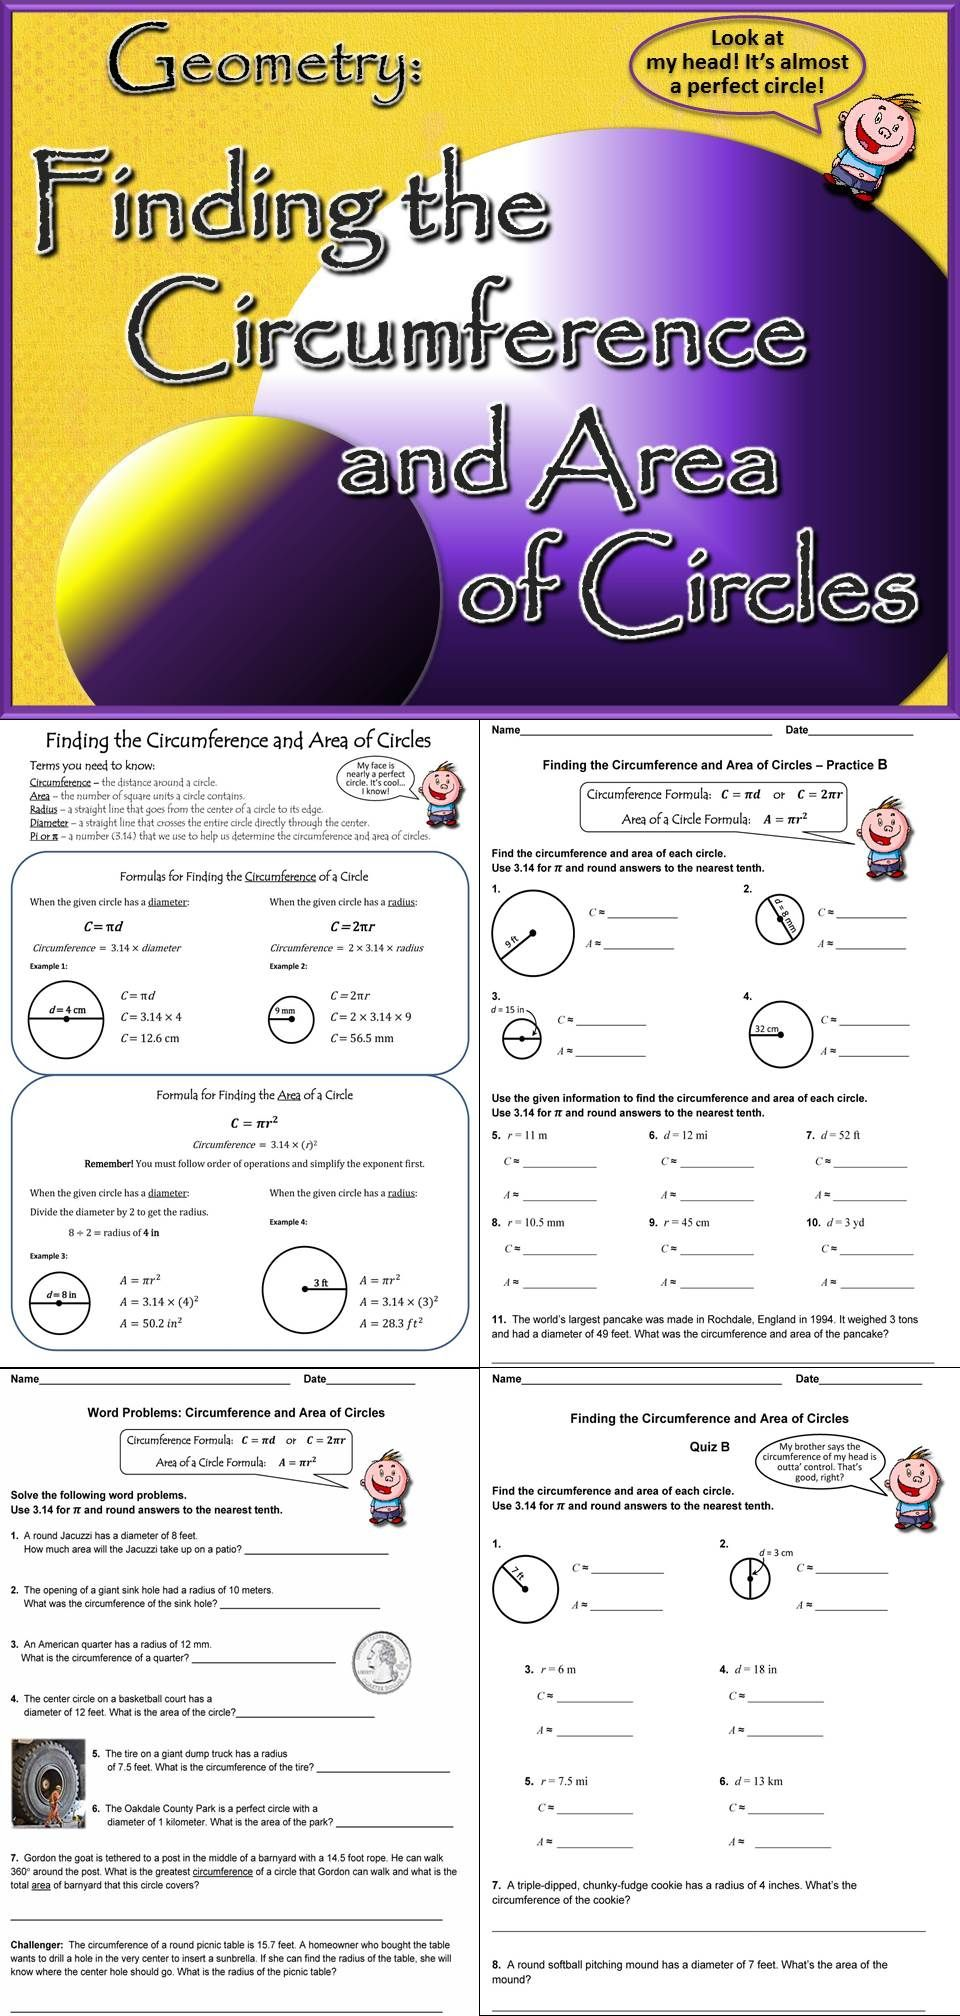 worksheet Circumference And Area Of A Circle Worksheet circumference of a circle worksheets 7th grade standard met and area circles bundled unit ccss aligned